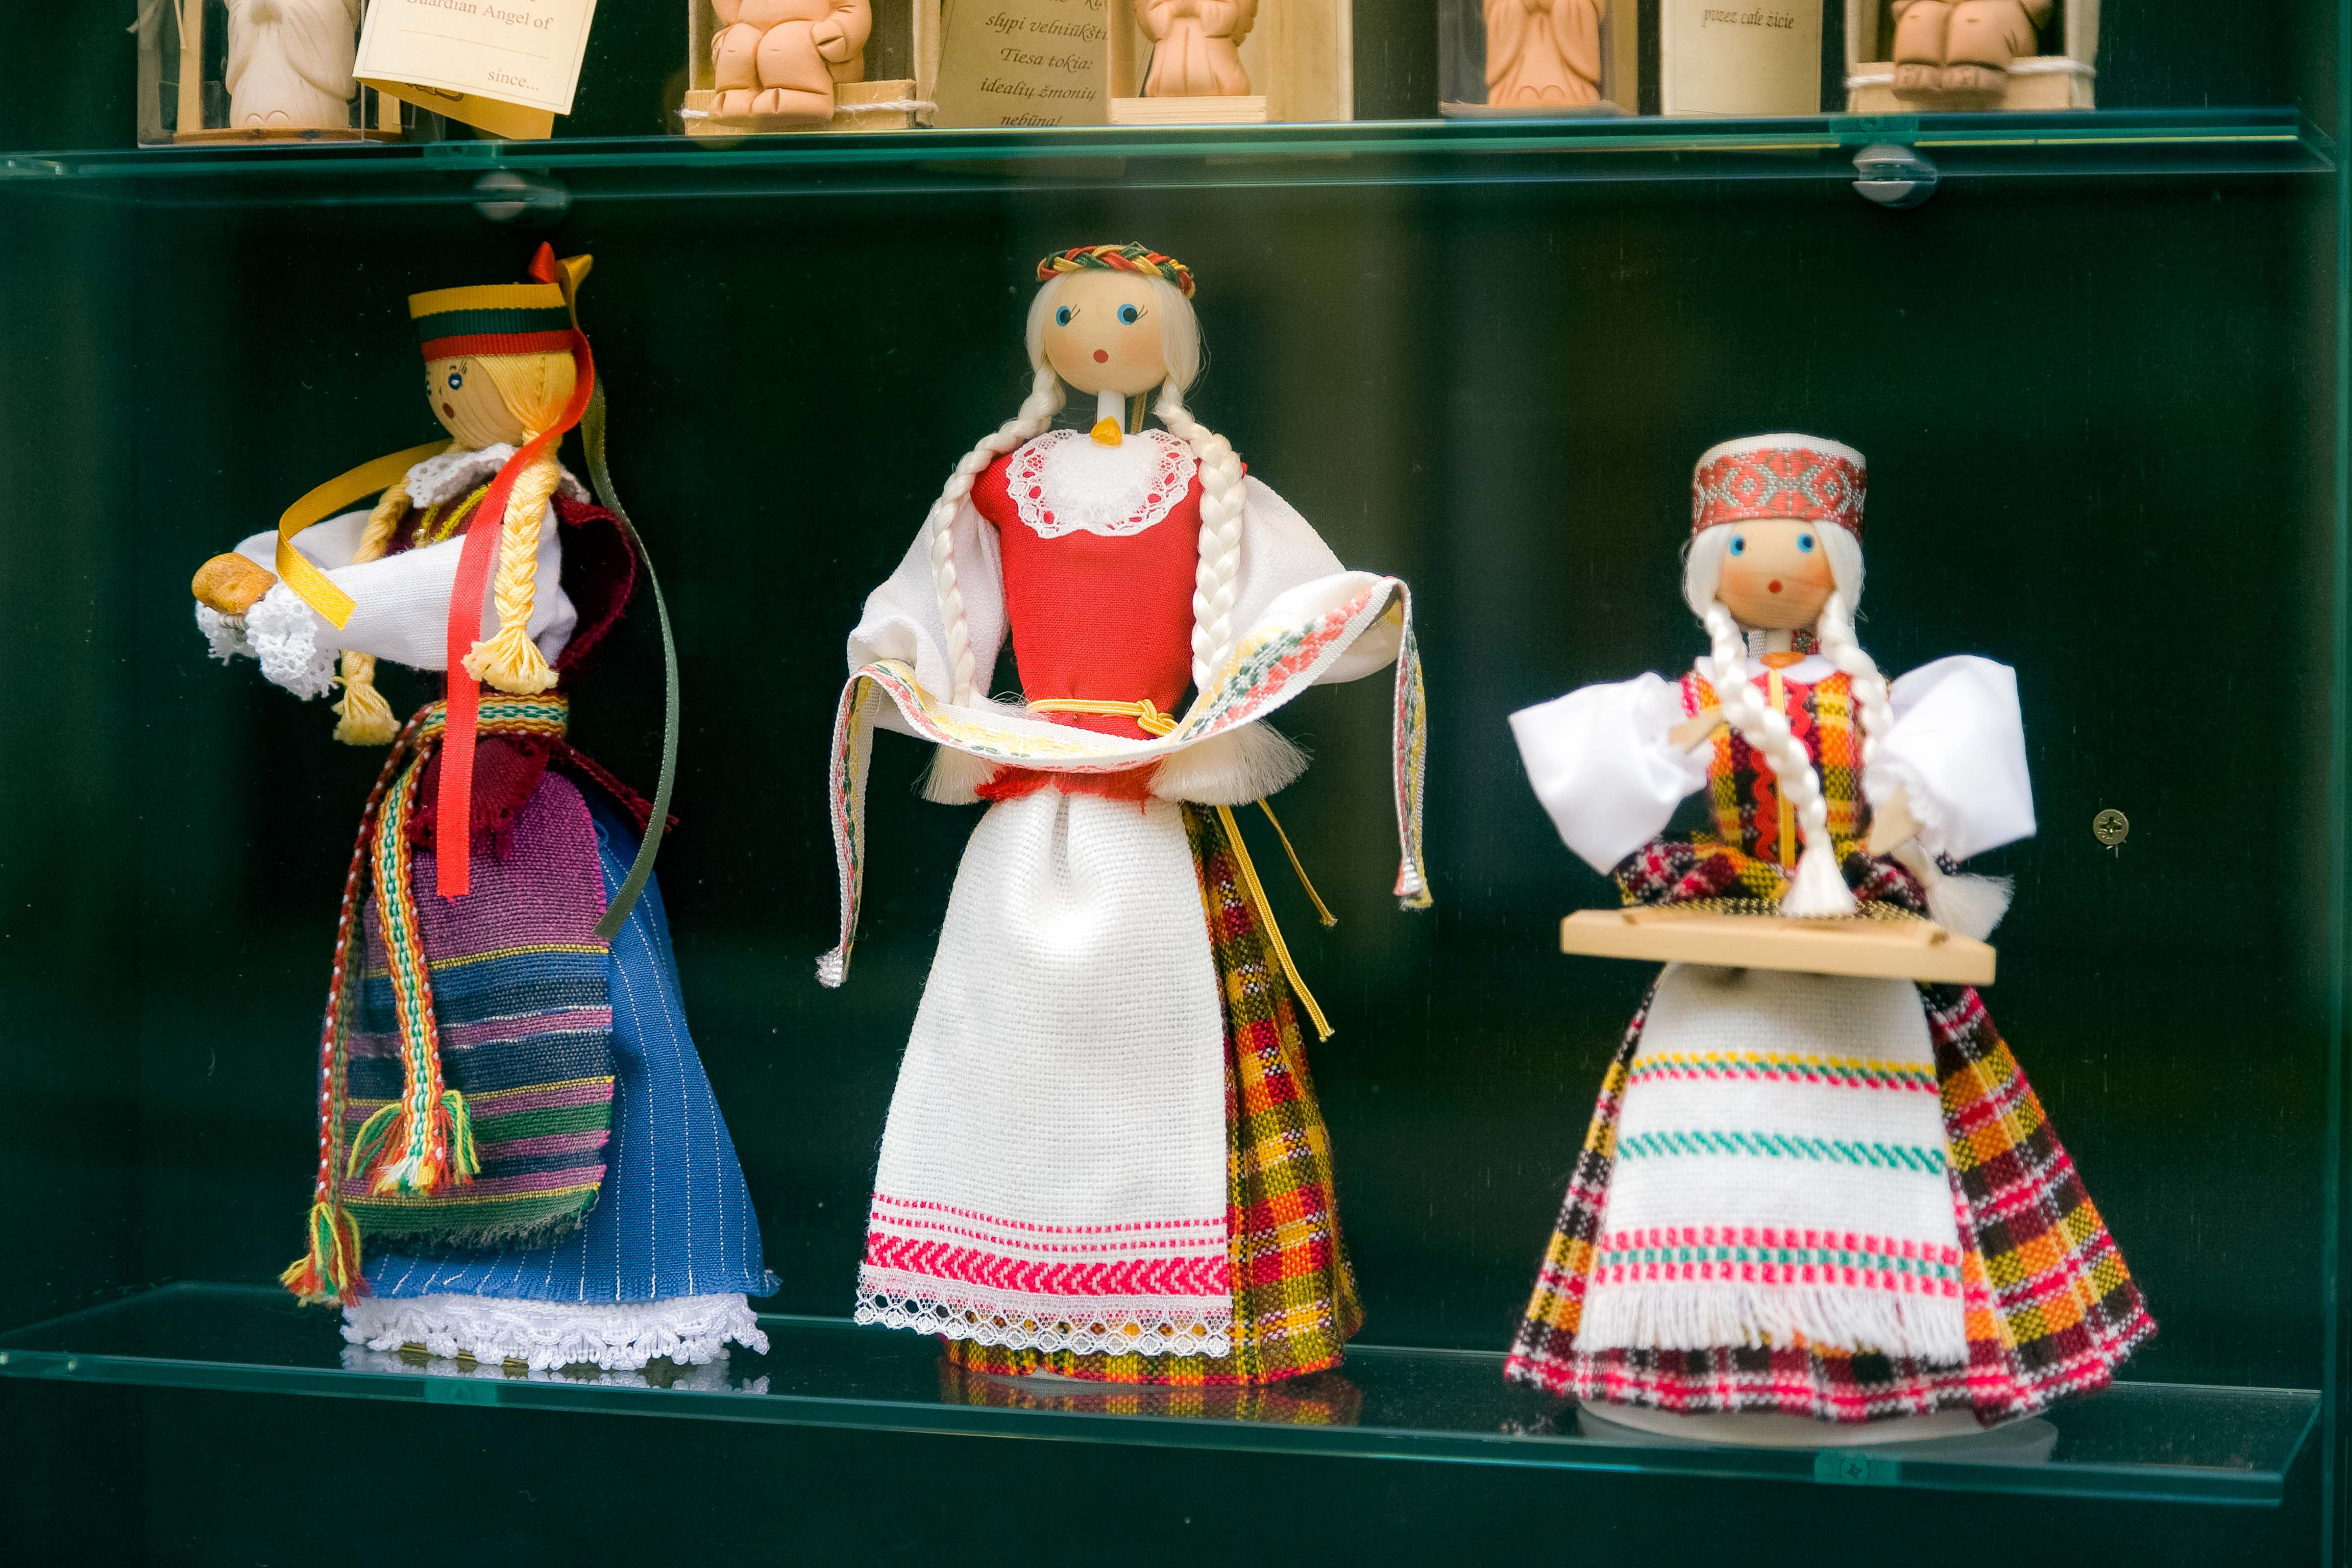 Lithuania, Vilnius, Three Dolls In Window, 2010, IMG_3100